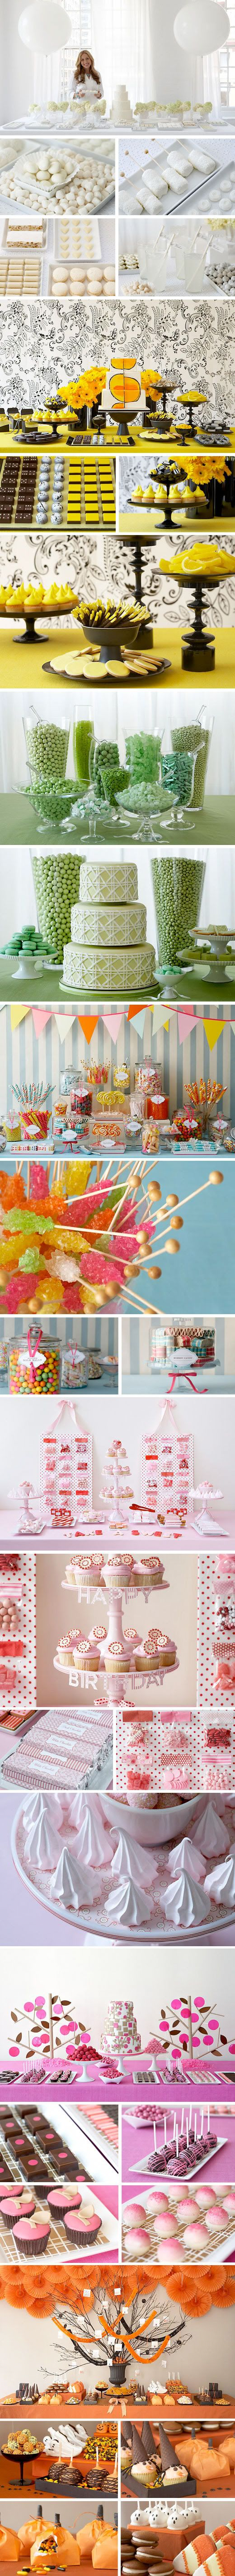 candy displays: Candy Display, Candy Buffet, Showers Weddings, Holidays Showers, Candy Bar, Party Color, Party Inspiration, Birthdays Showers, Birthdays Holidays